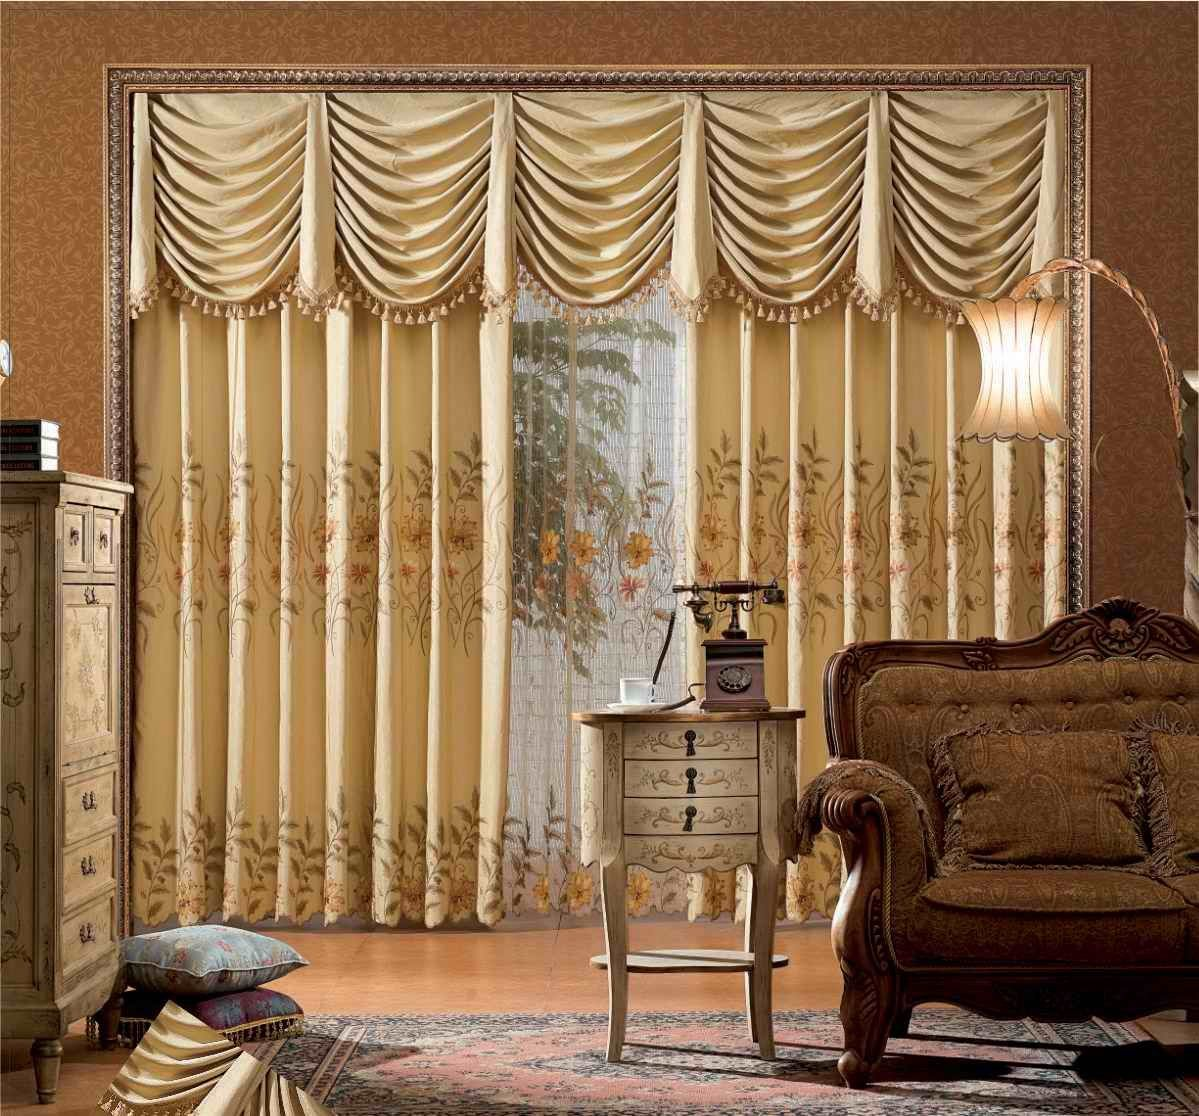 Curtain designs living room - Make Modern Living Room Curtains Http Posthomesltd Com Wp